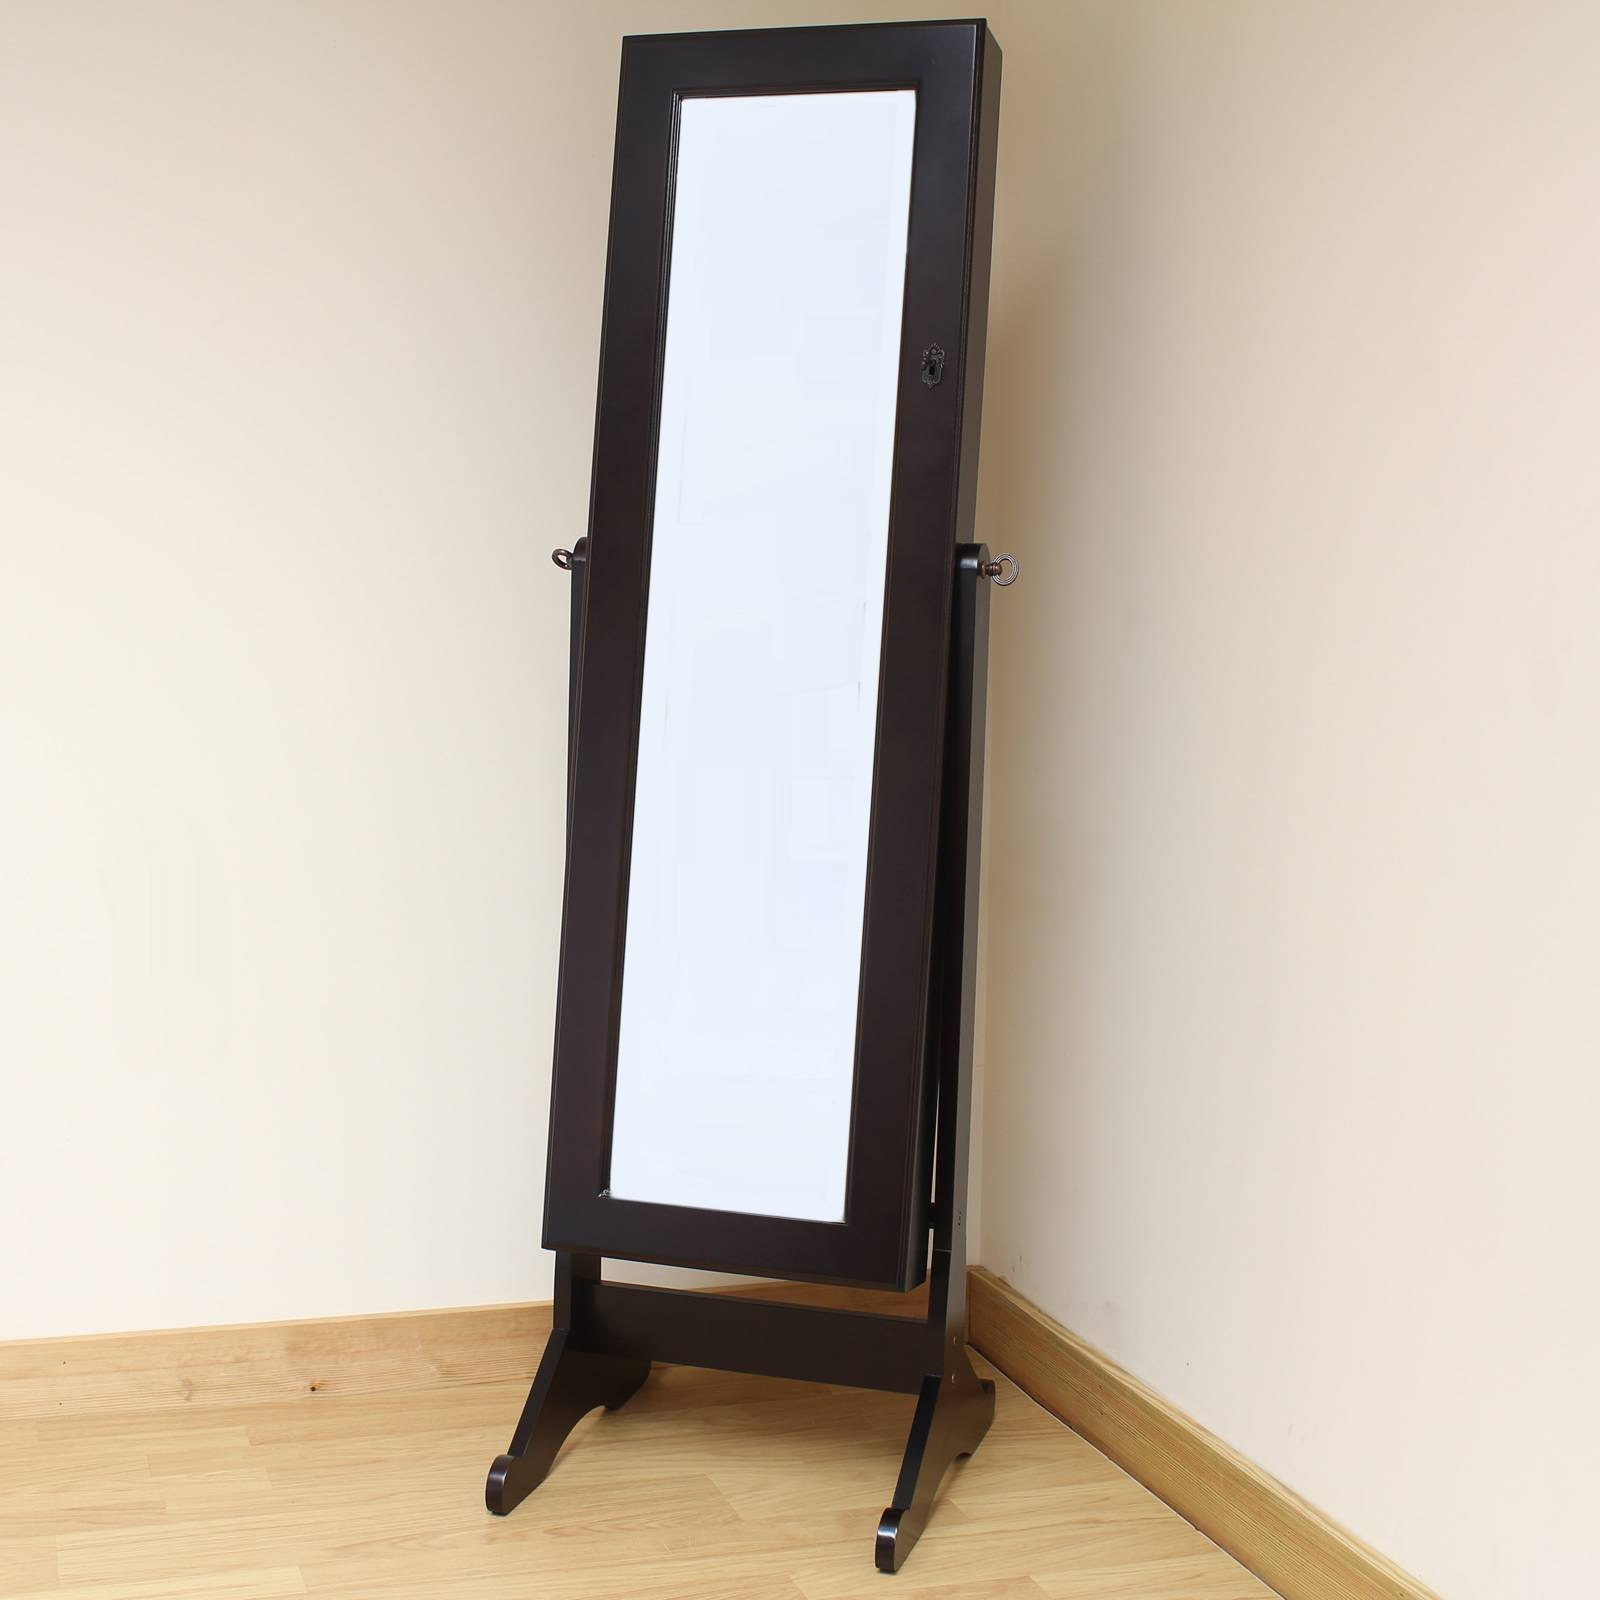 Homeware: Oval Full Length Standing Mirror | Large Floor Mirrors intended for Full Length Large Free Standing Mirrors (Image 9 of 15)